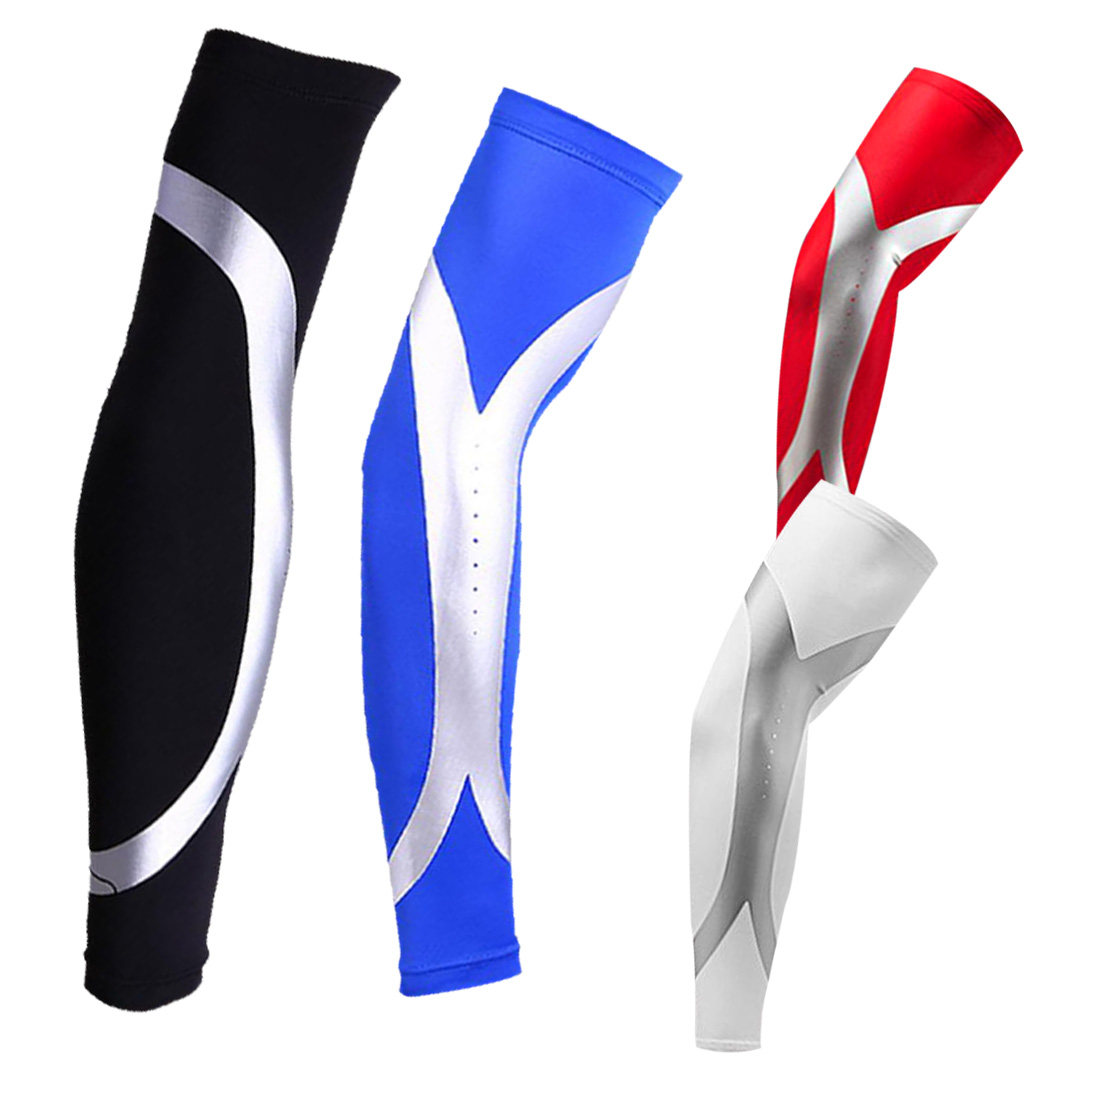 1pcs Basketball Elbow Support Protector Bicycle Cycling Sports Safety Elbow Pad Long Arm Sleeve Xrq88 Cheapest Price From Our Site Apparel Accessories